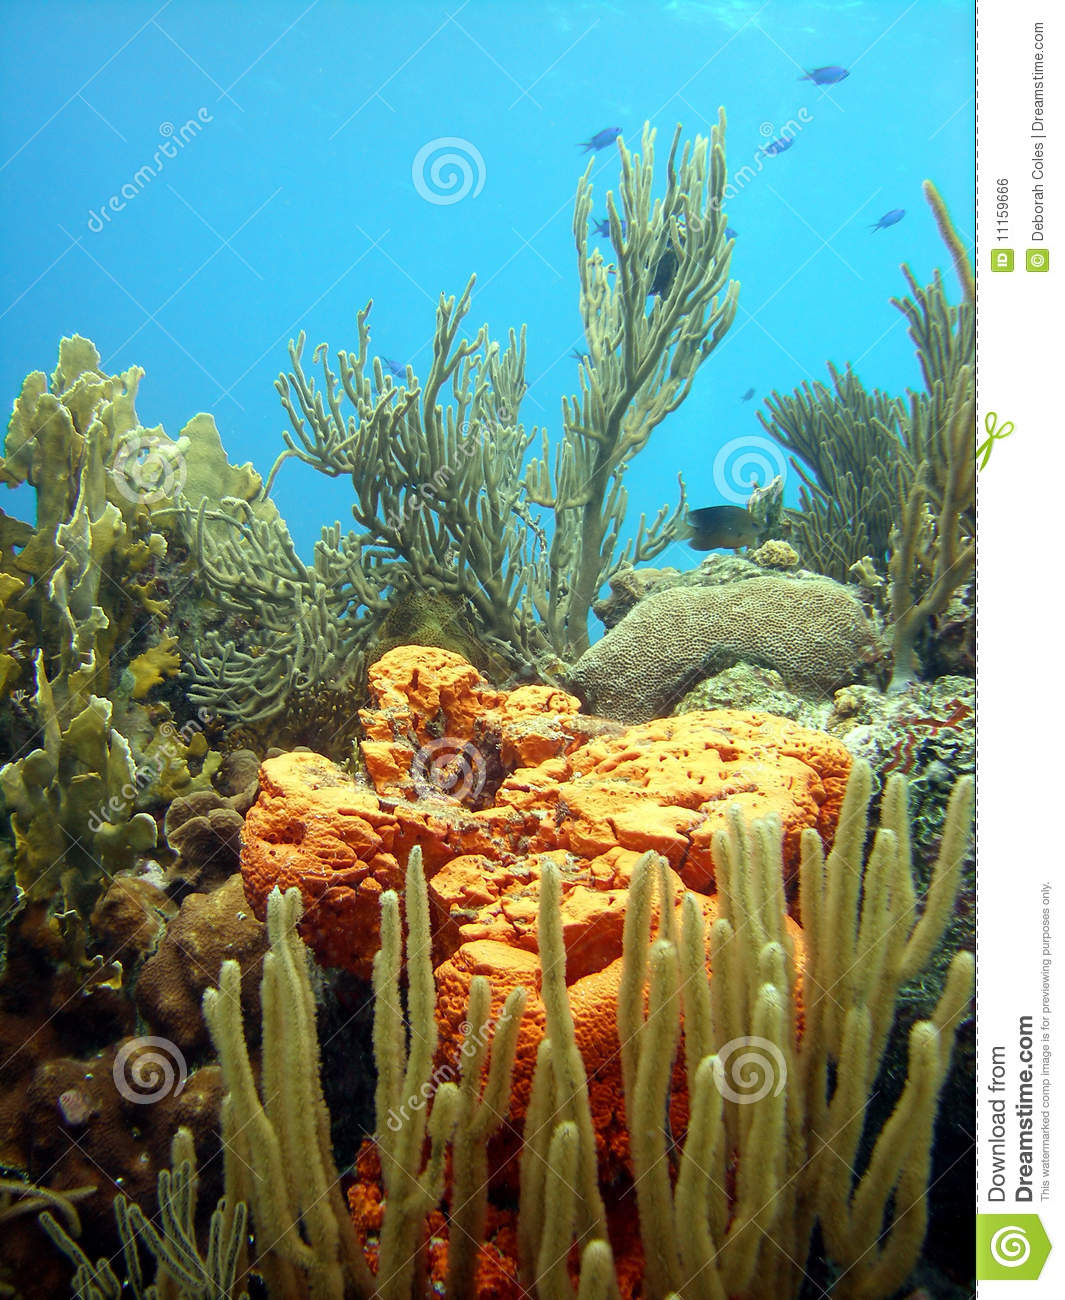 Coral Reef Background: Colourful Coral Reef Scene Stock Photo. Image Of Ocean